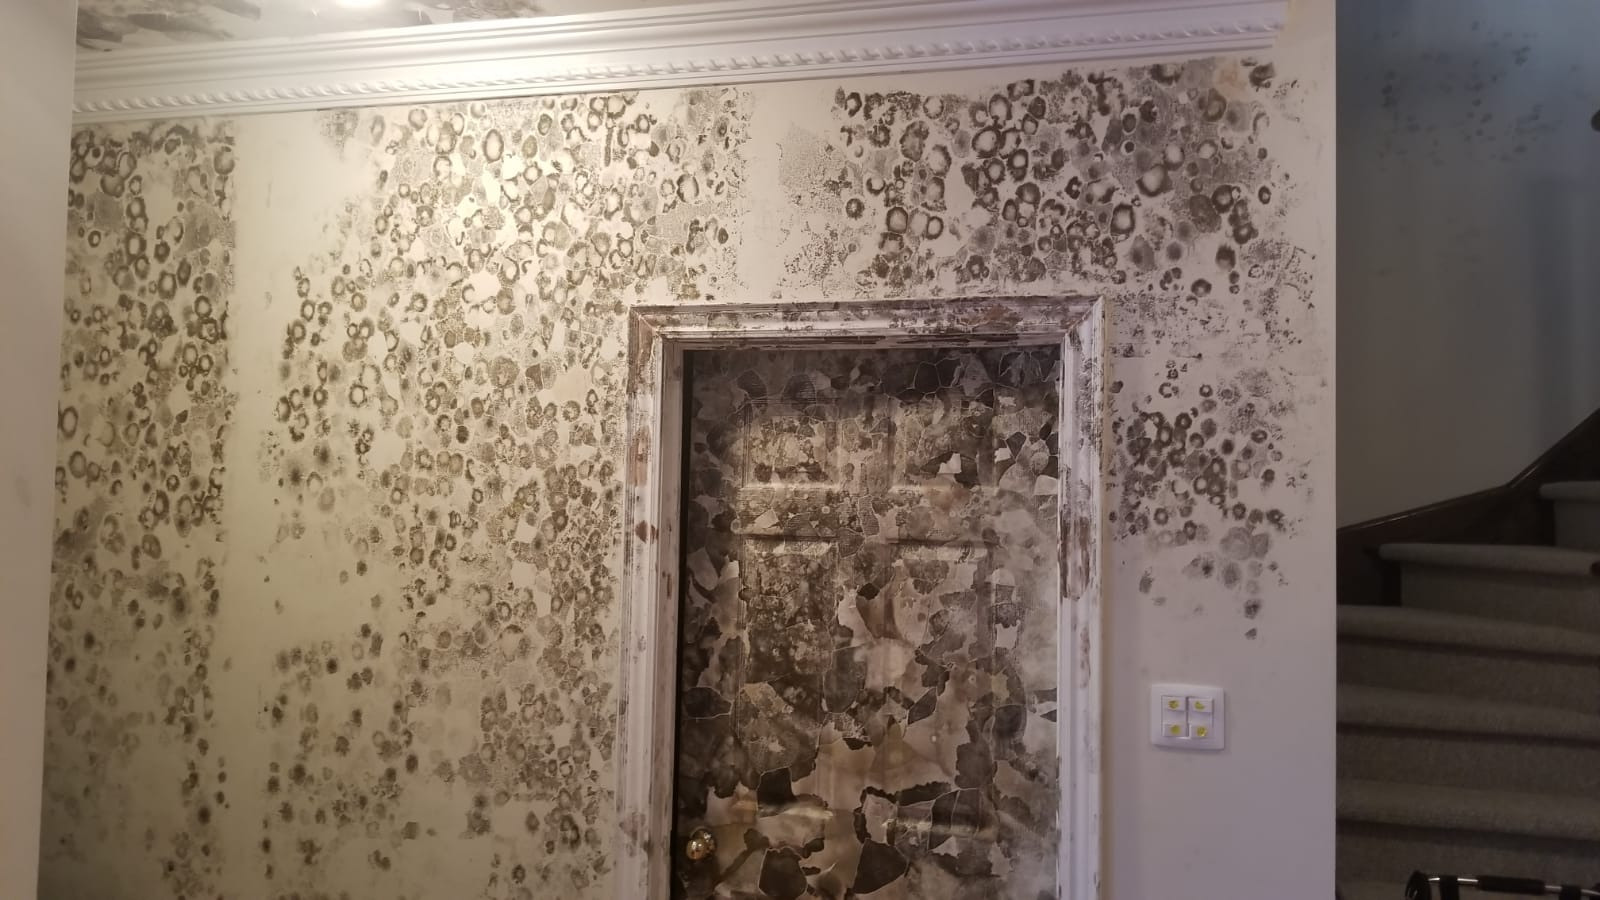 mold removal in pickering, mold inspection in pickering, mold removal services pickering